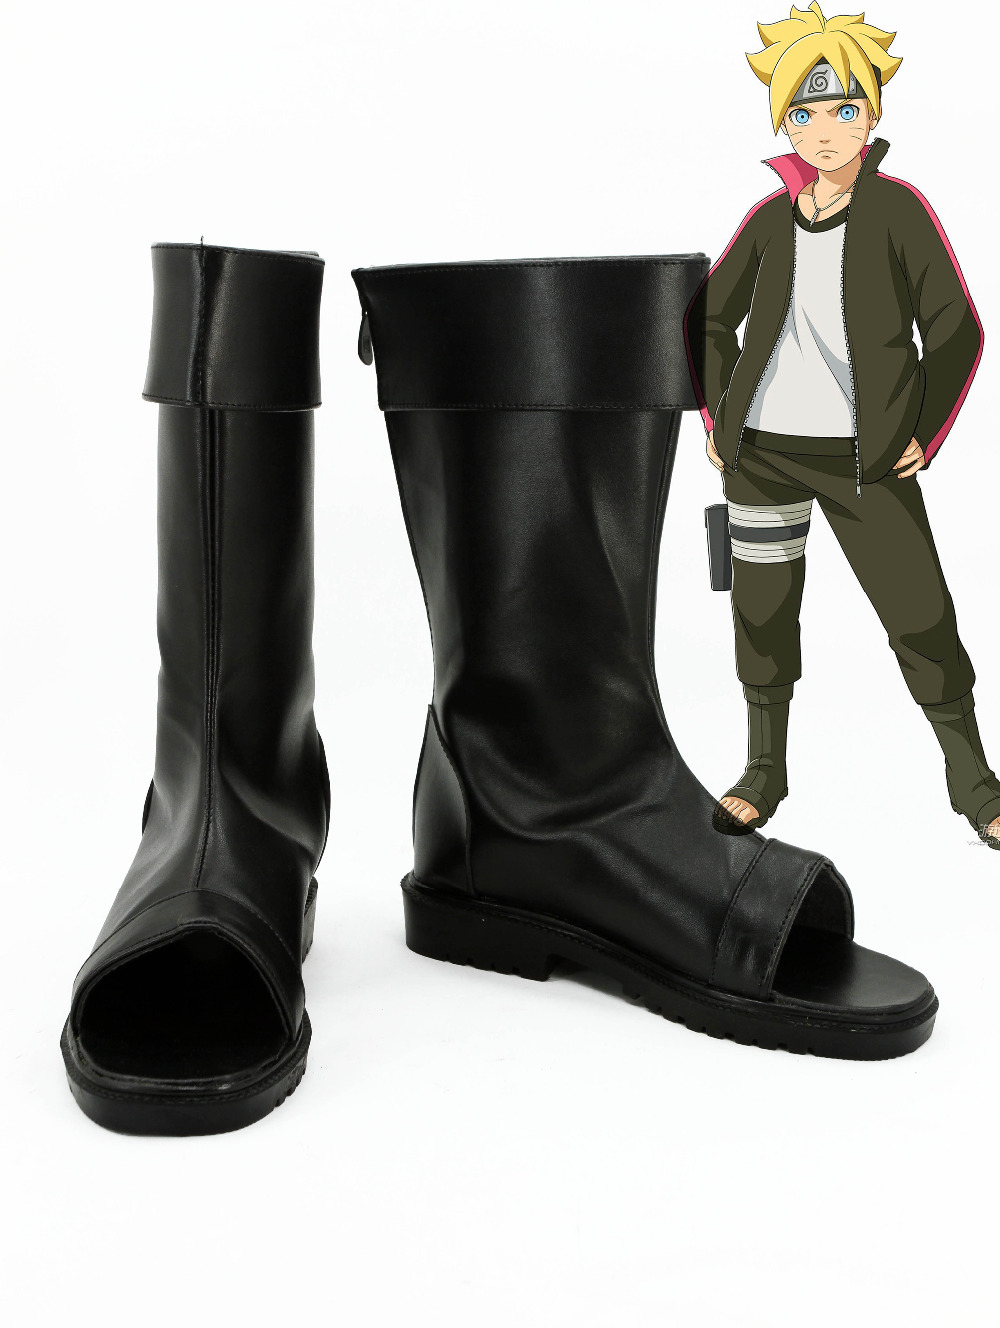 все цены на BORUTO NARUTO THE MOVIE Uchiha Sasuke Cosplay Boots Party Shoes